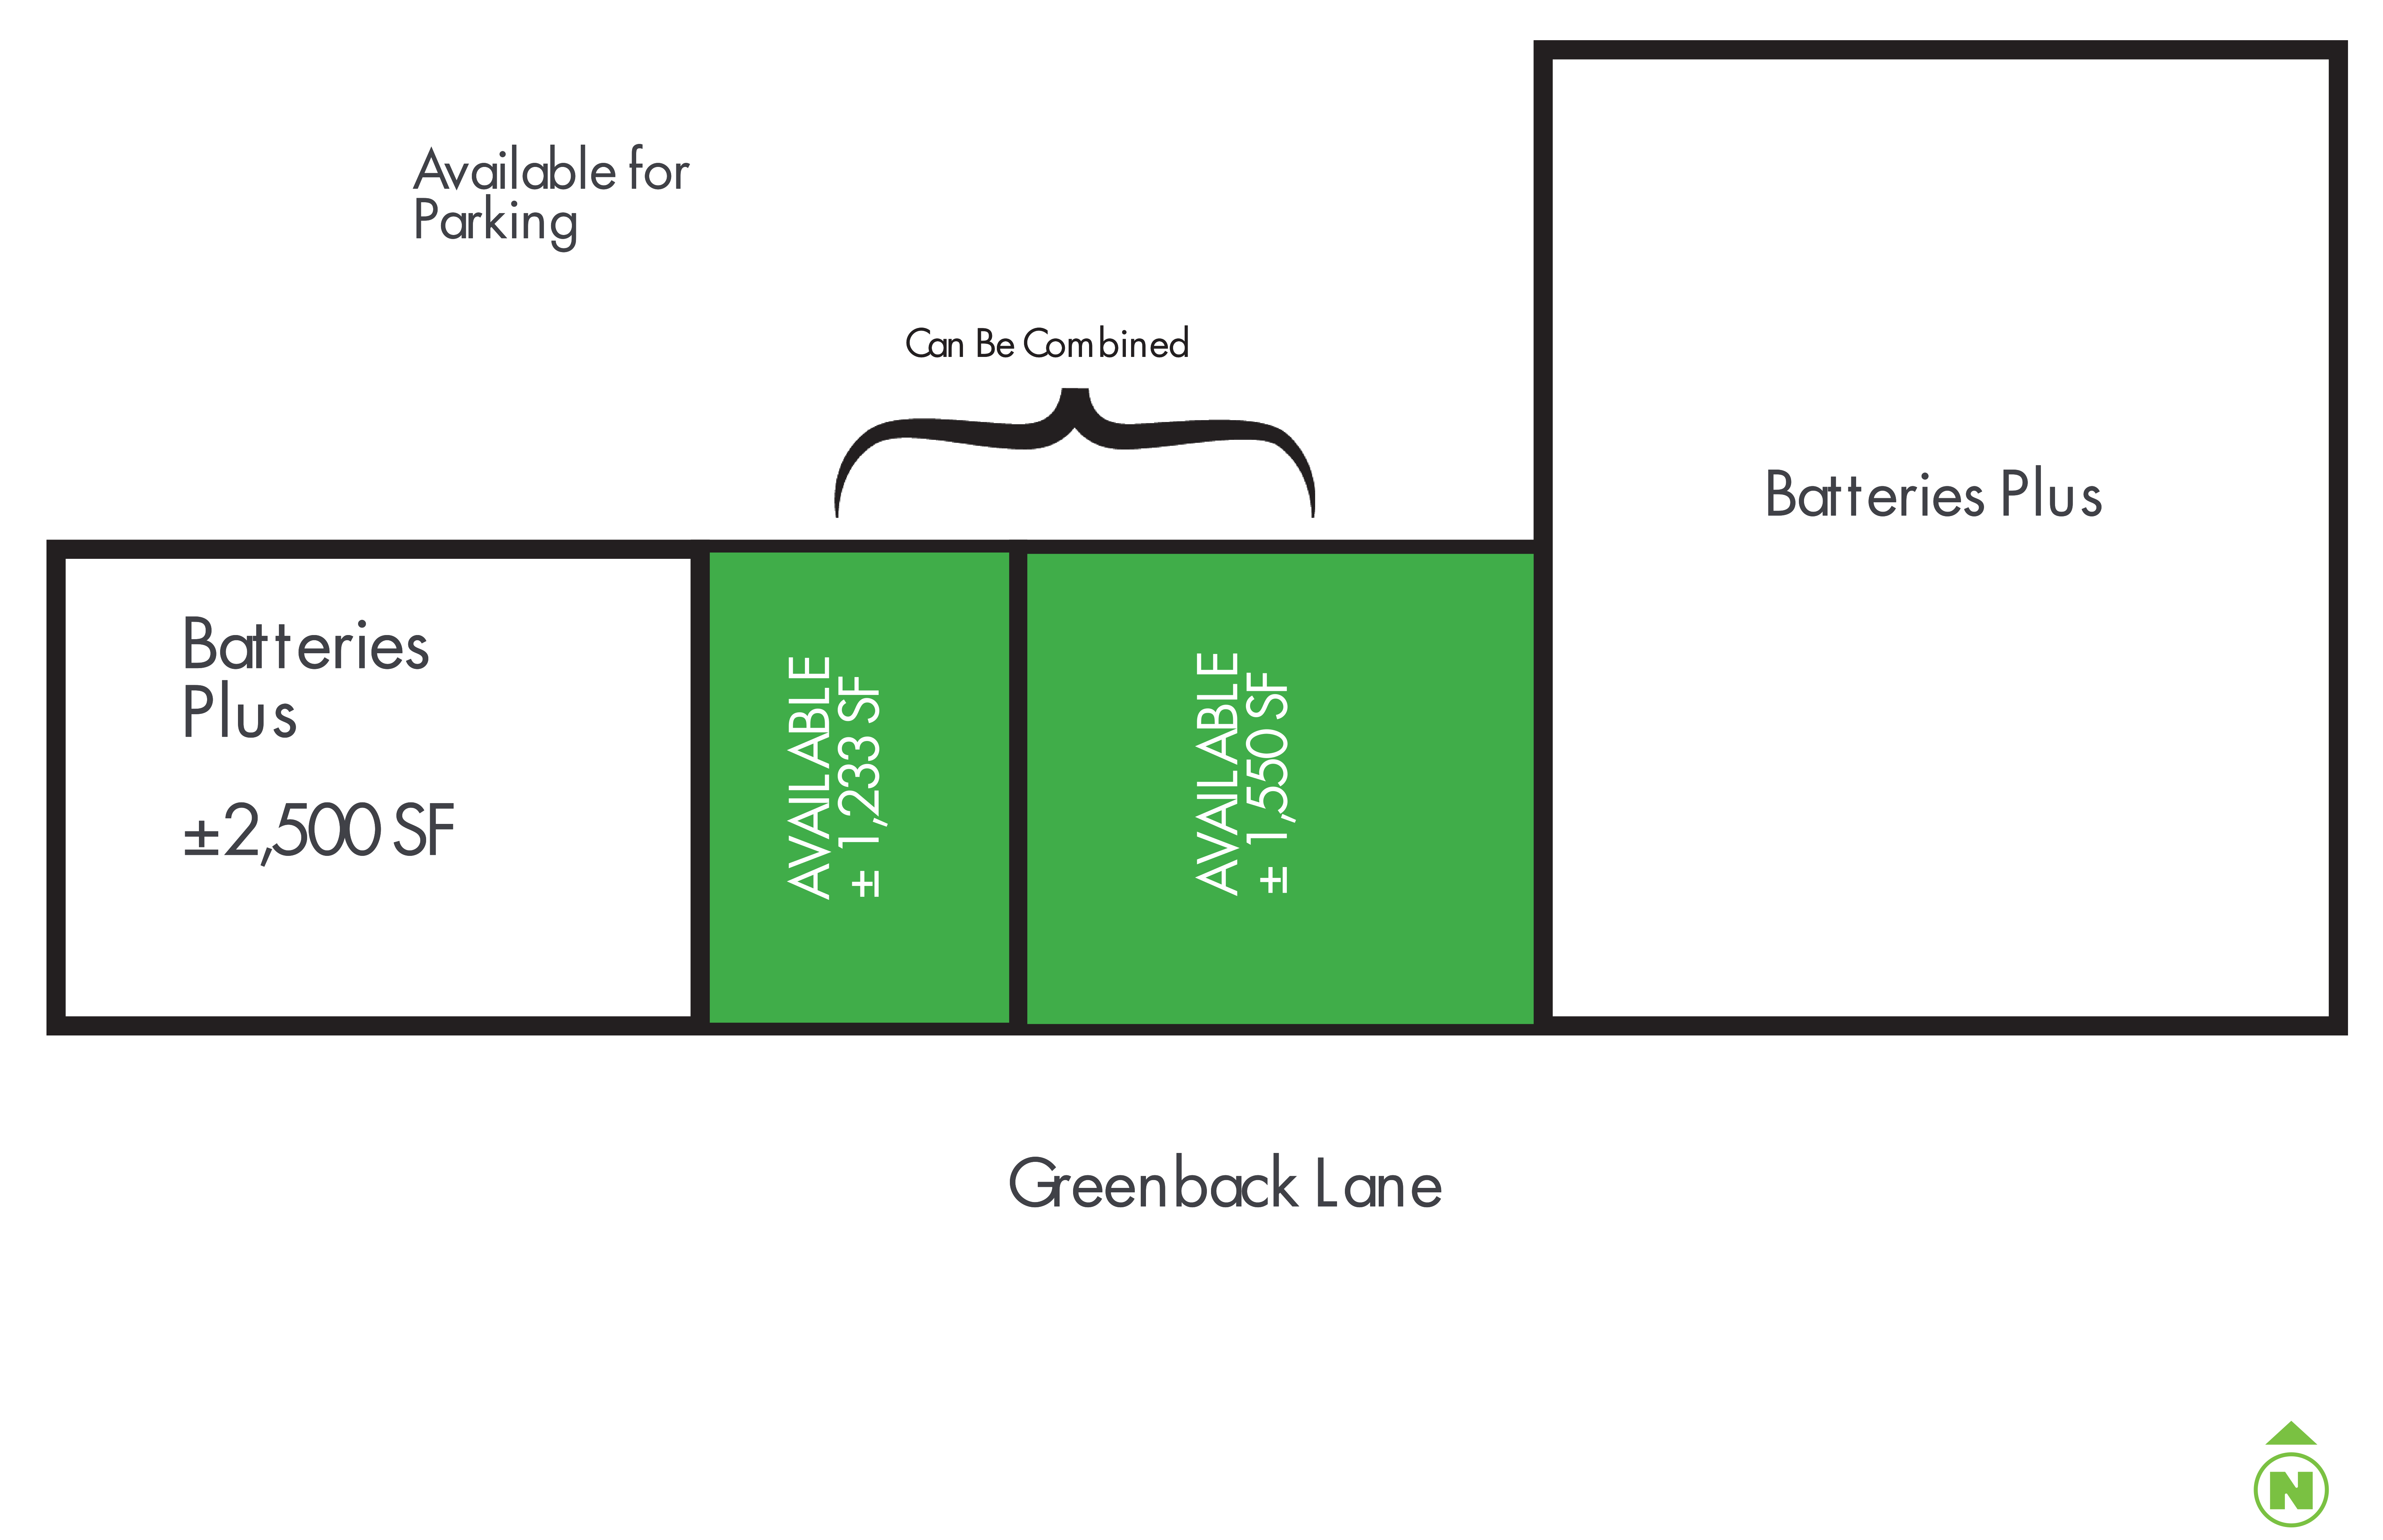 8025 Greenback Lane: site plan